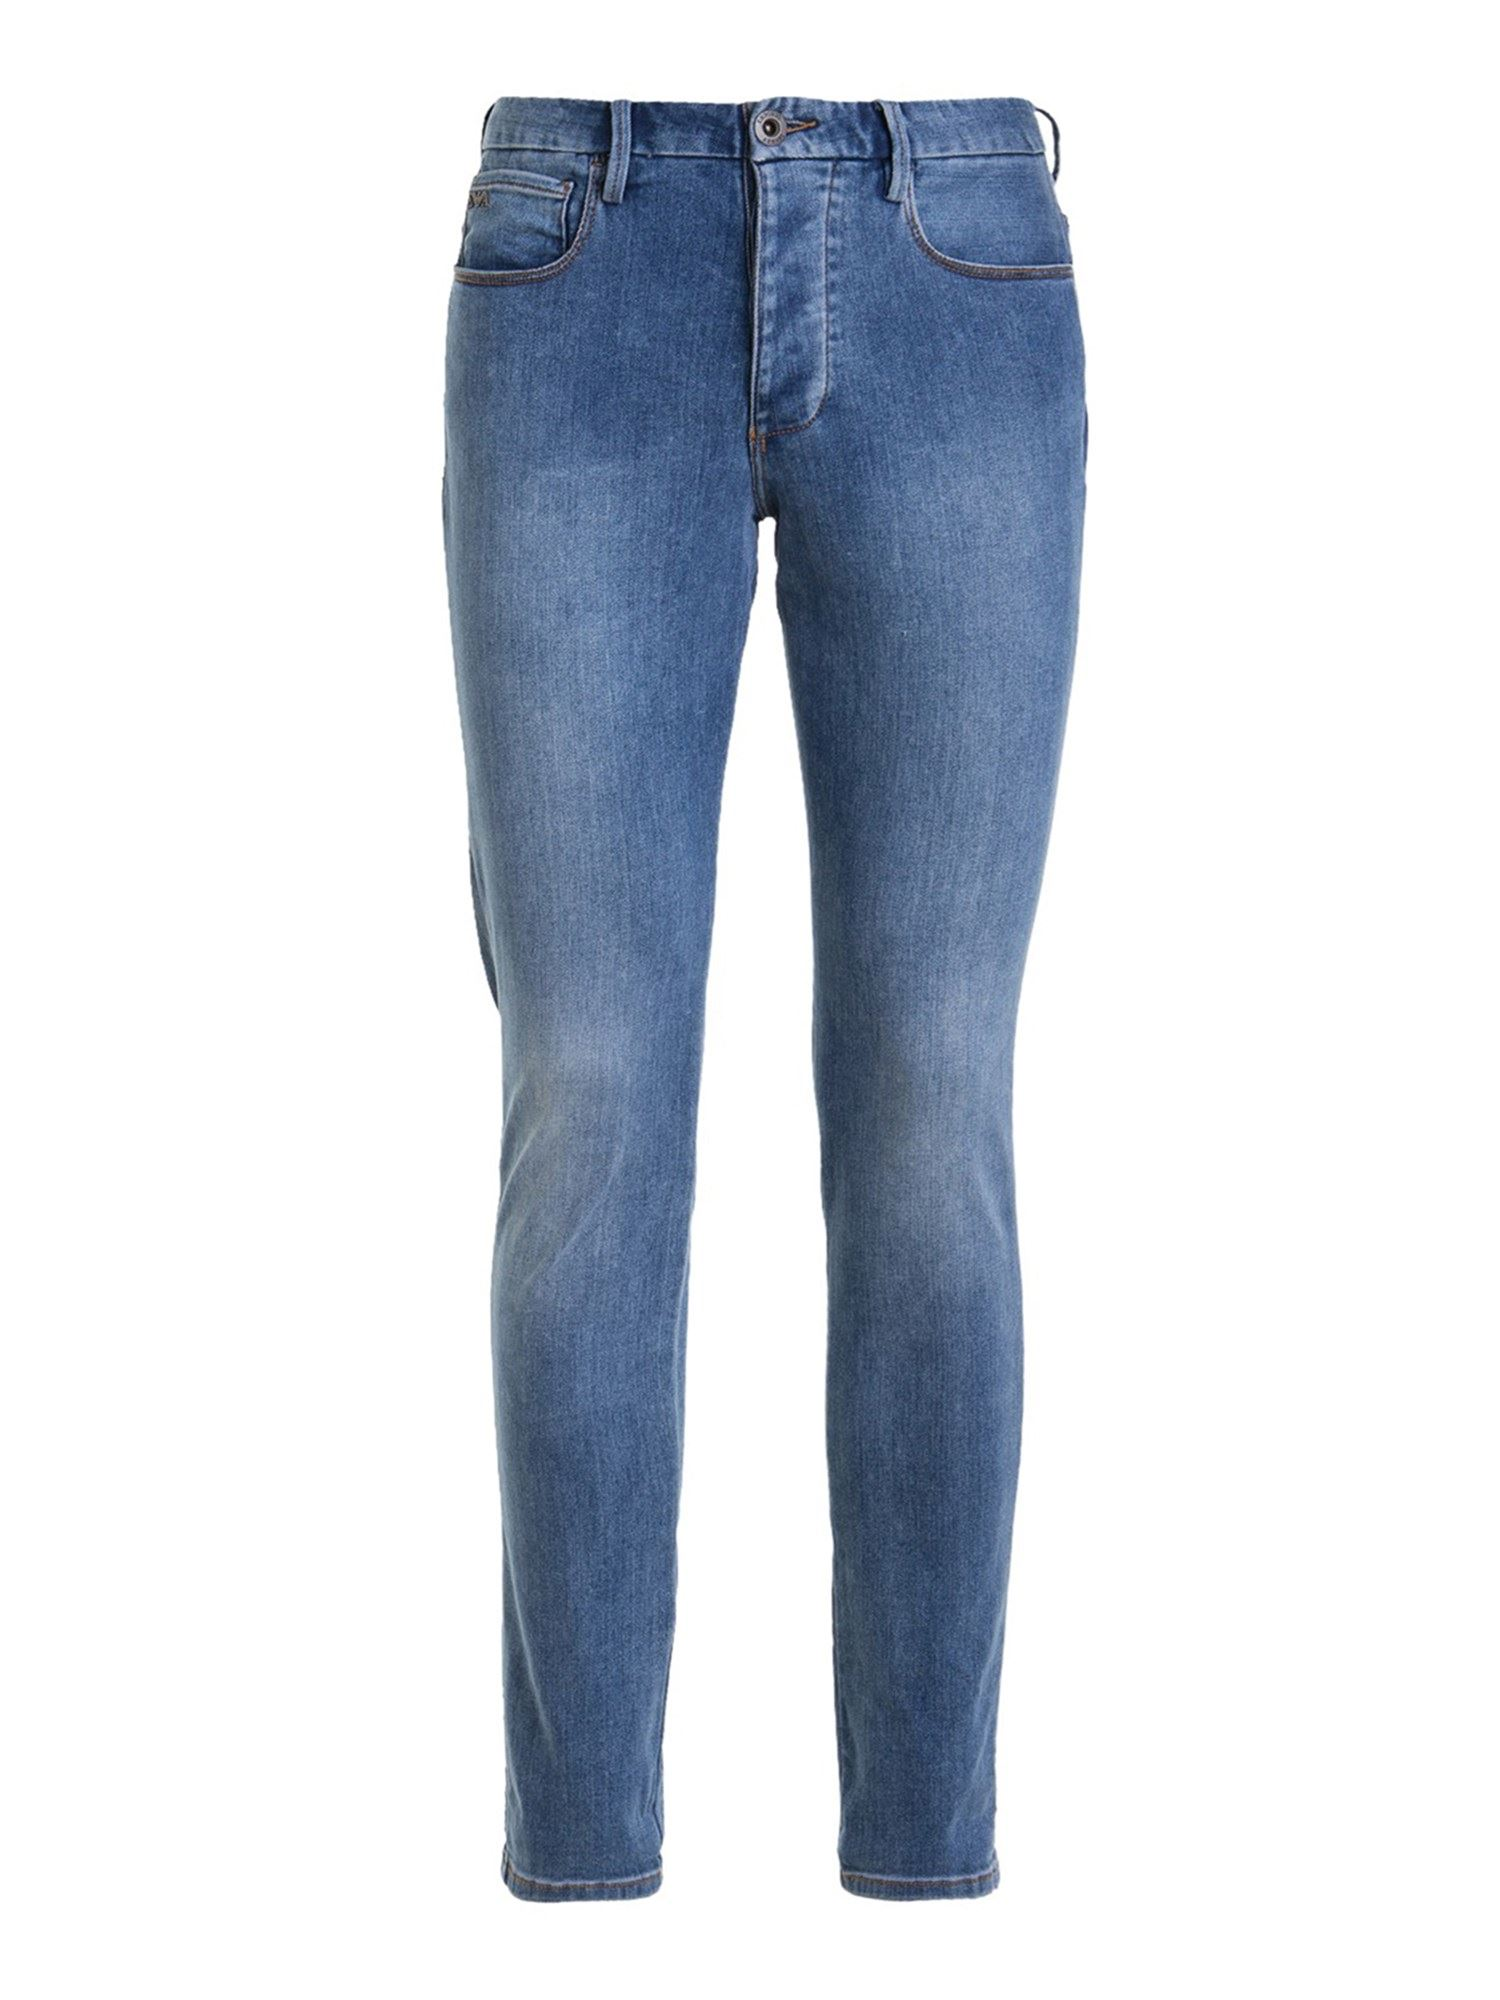 Emporio Armani J11 STRETCH COTTON JEANS IN LIGHT BLUE